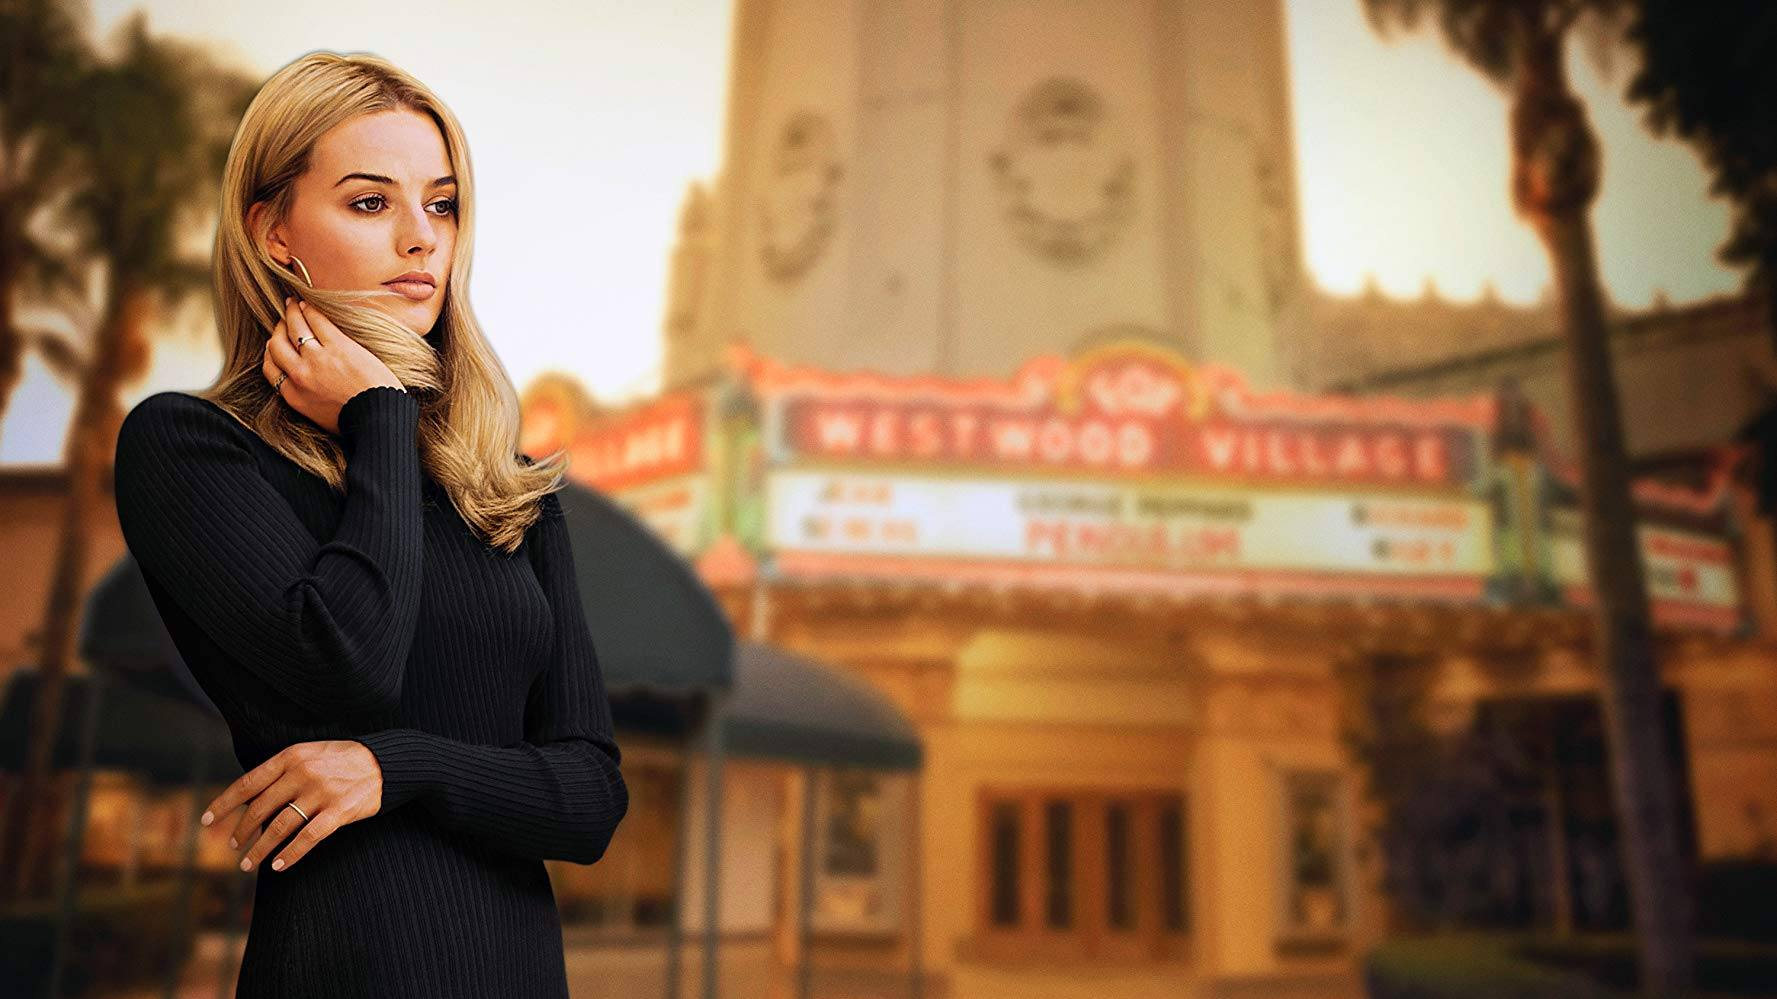 Fox Village Theatre in Once Upon a Time in Hollywood